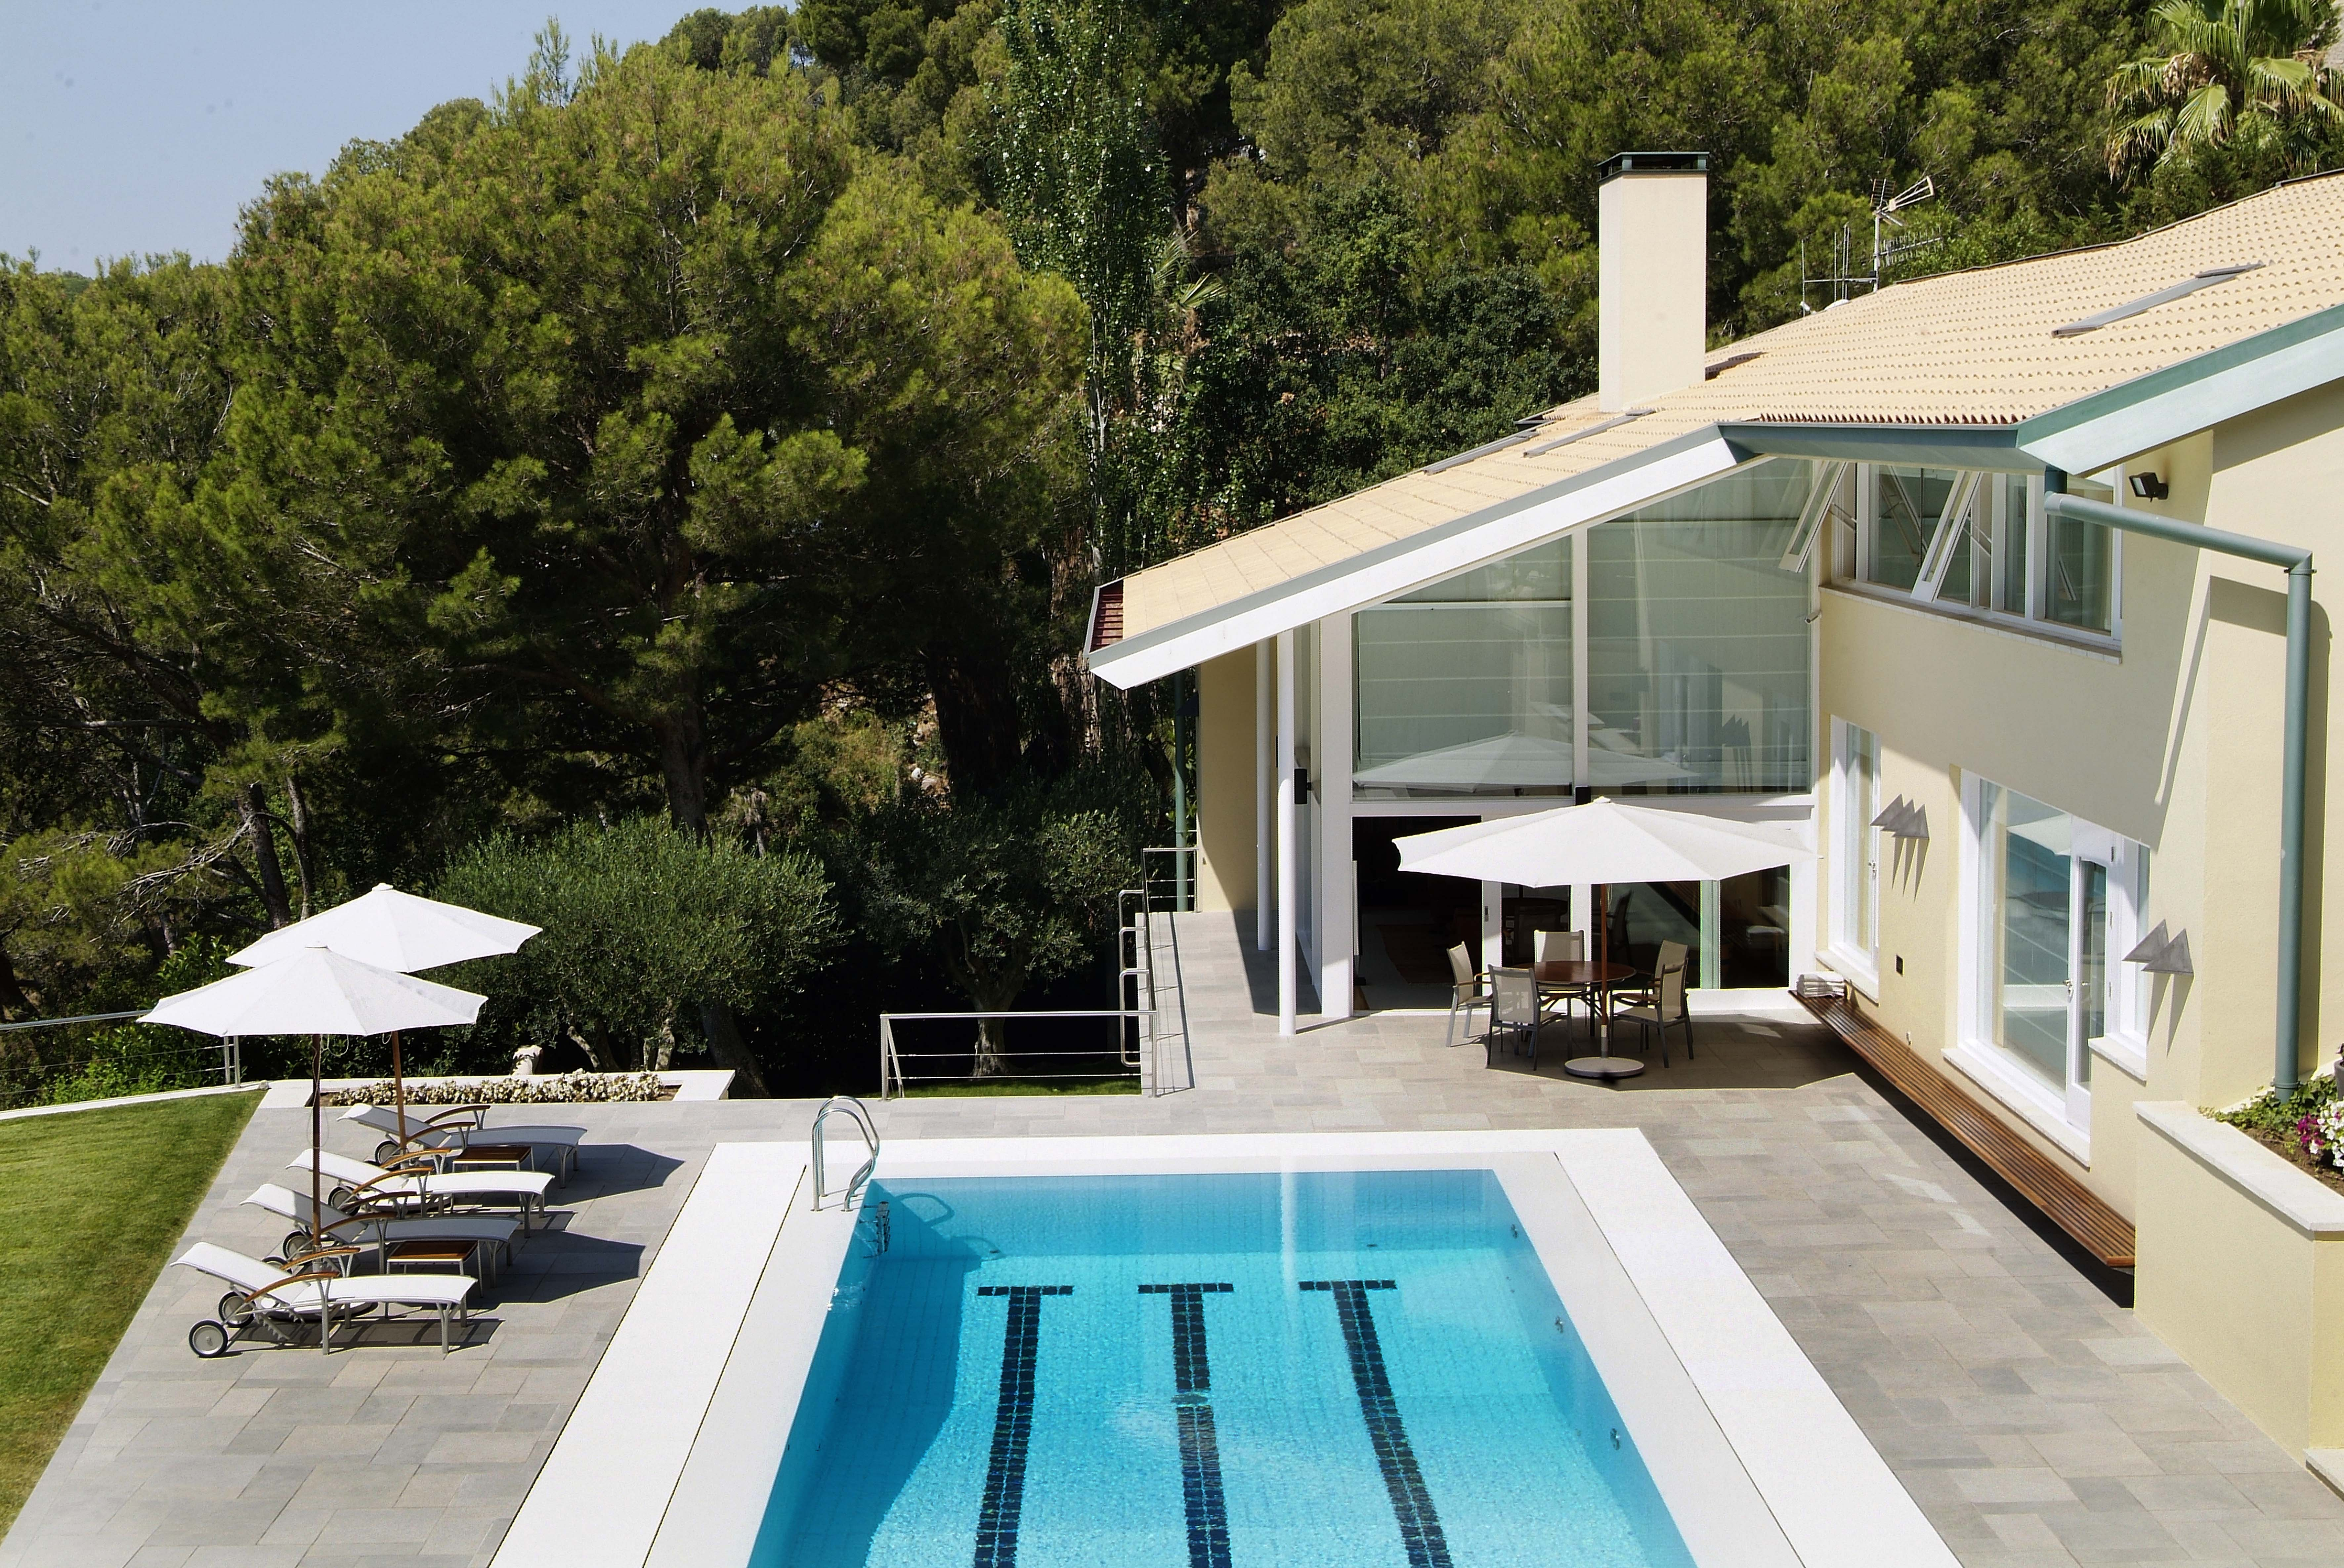 Single Family Home for Sale at Spectacular detached villa unique in its style in Begur Begur, Costa Brava 17255 Spain